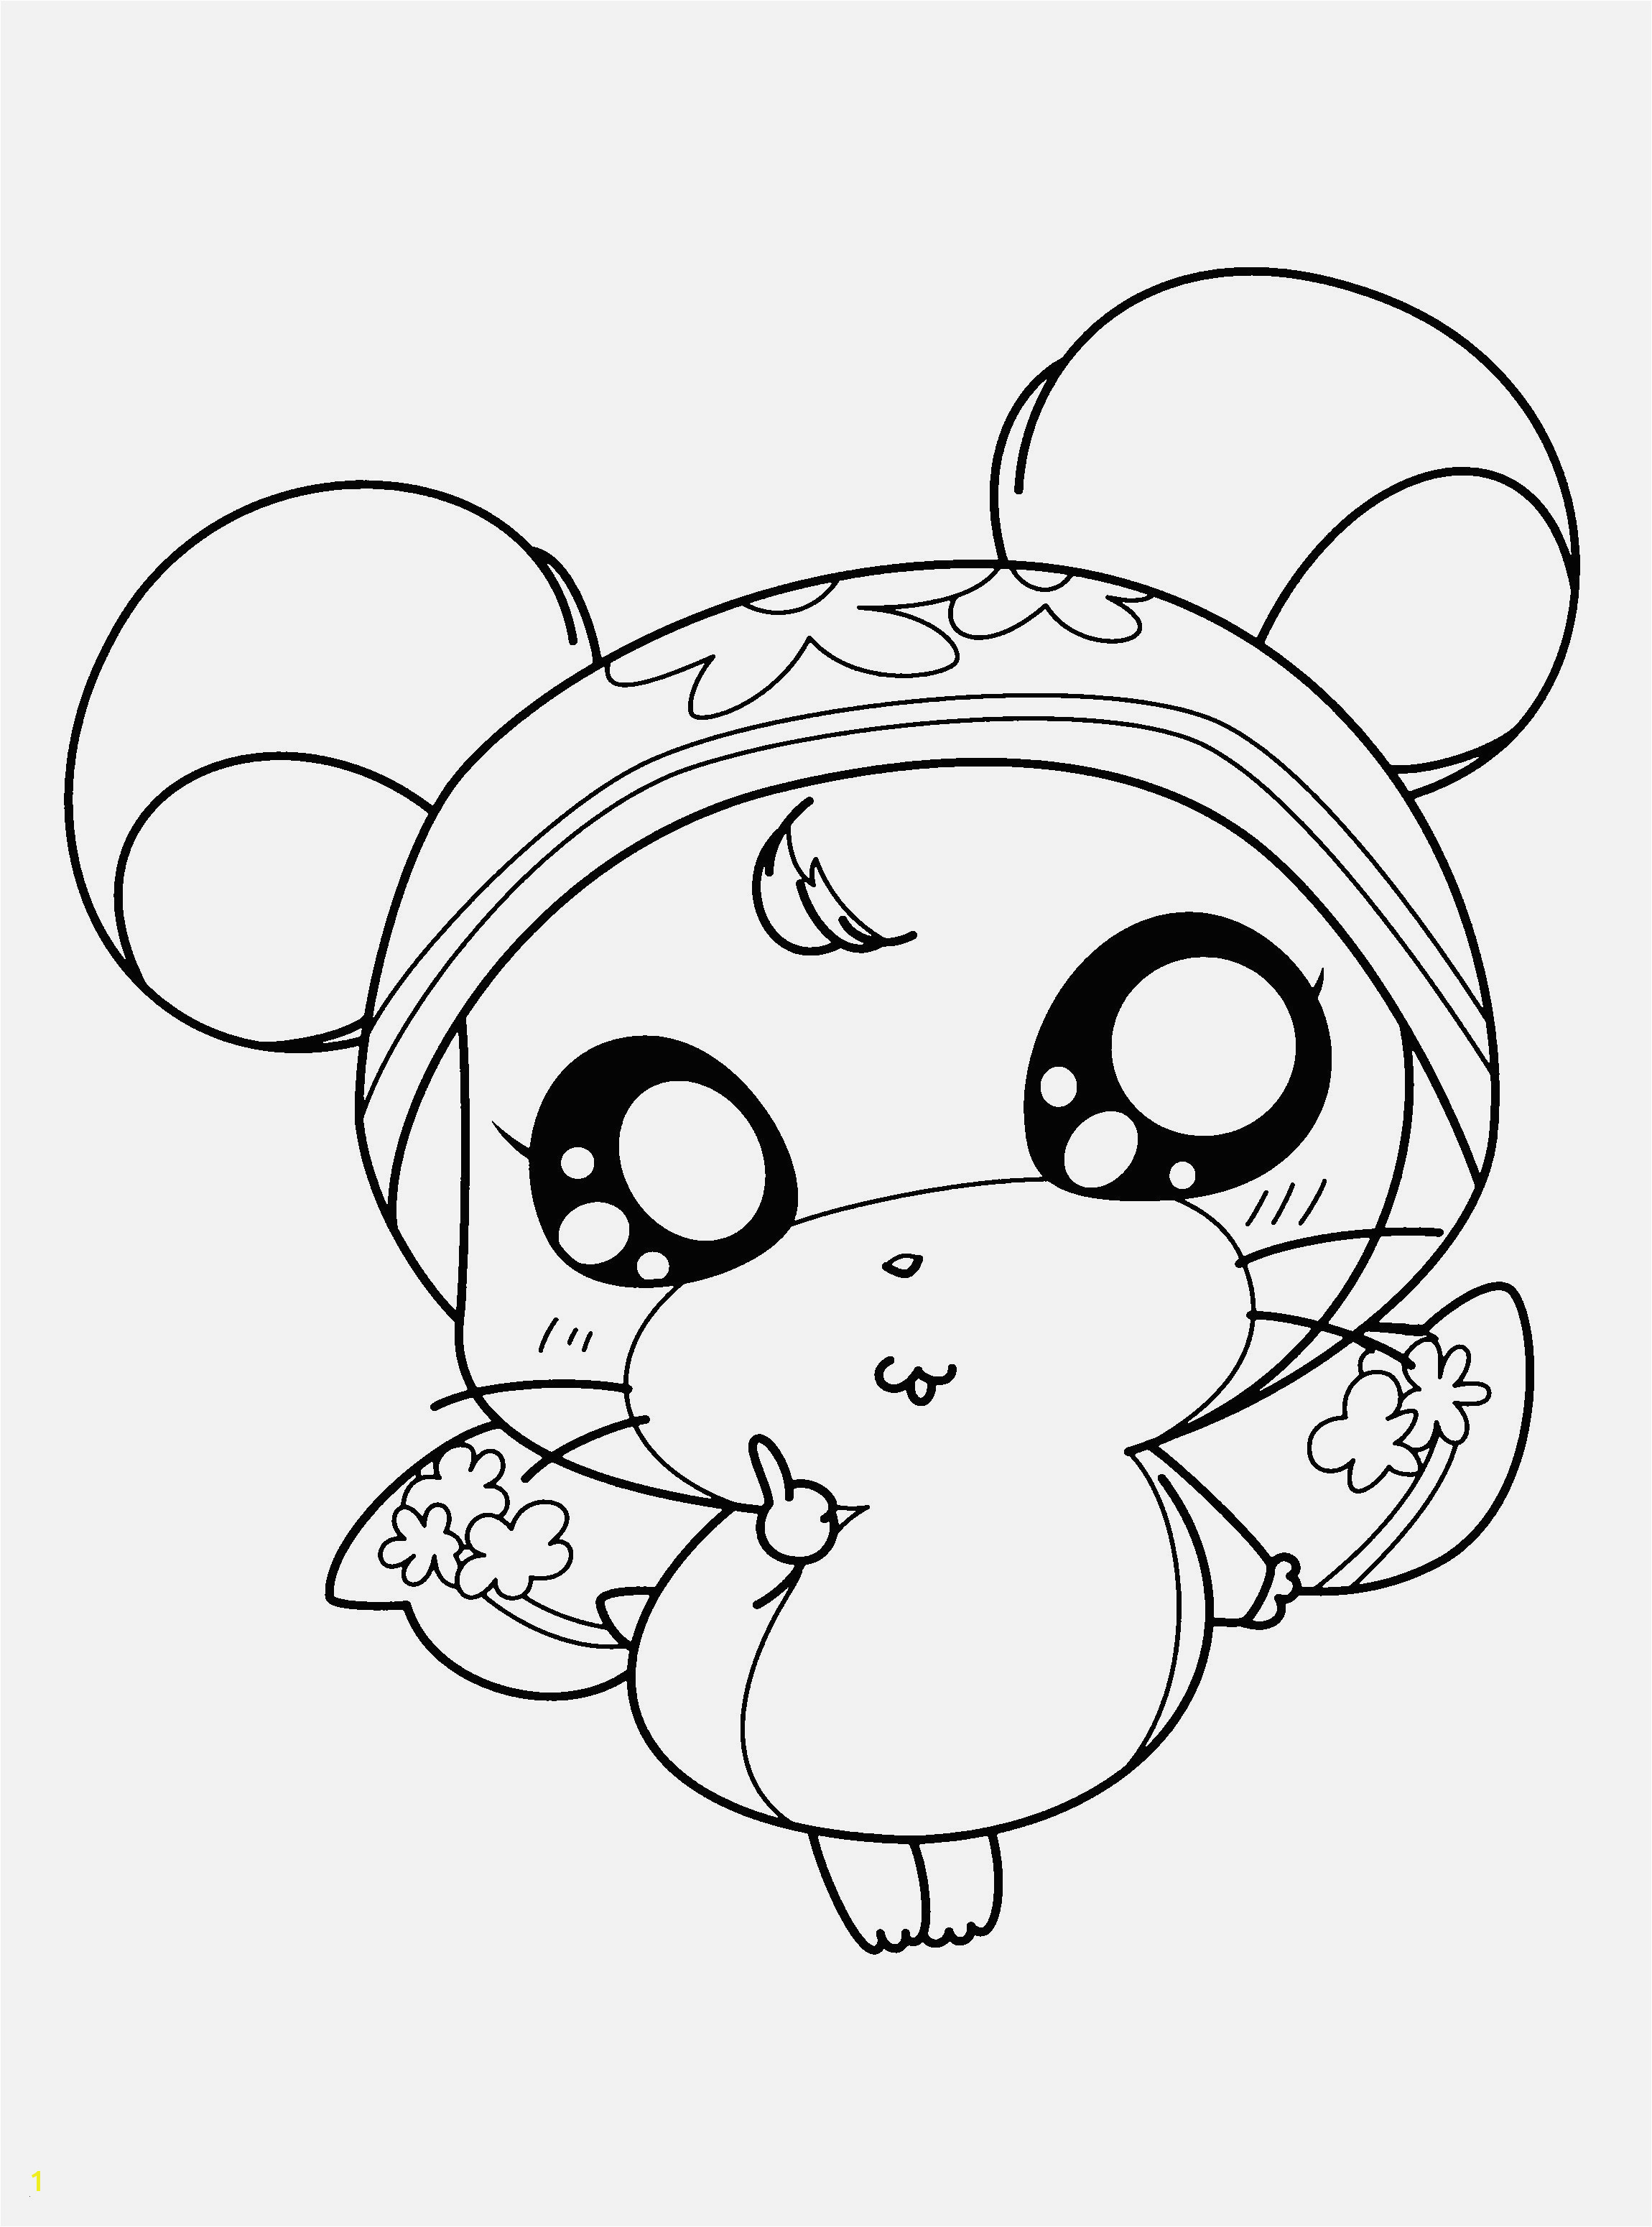 - Beanie Boo Coloring Pages Dessin De Pages À Colorier - Print And